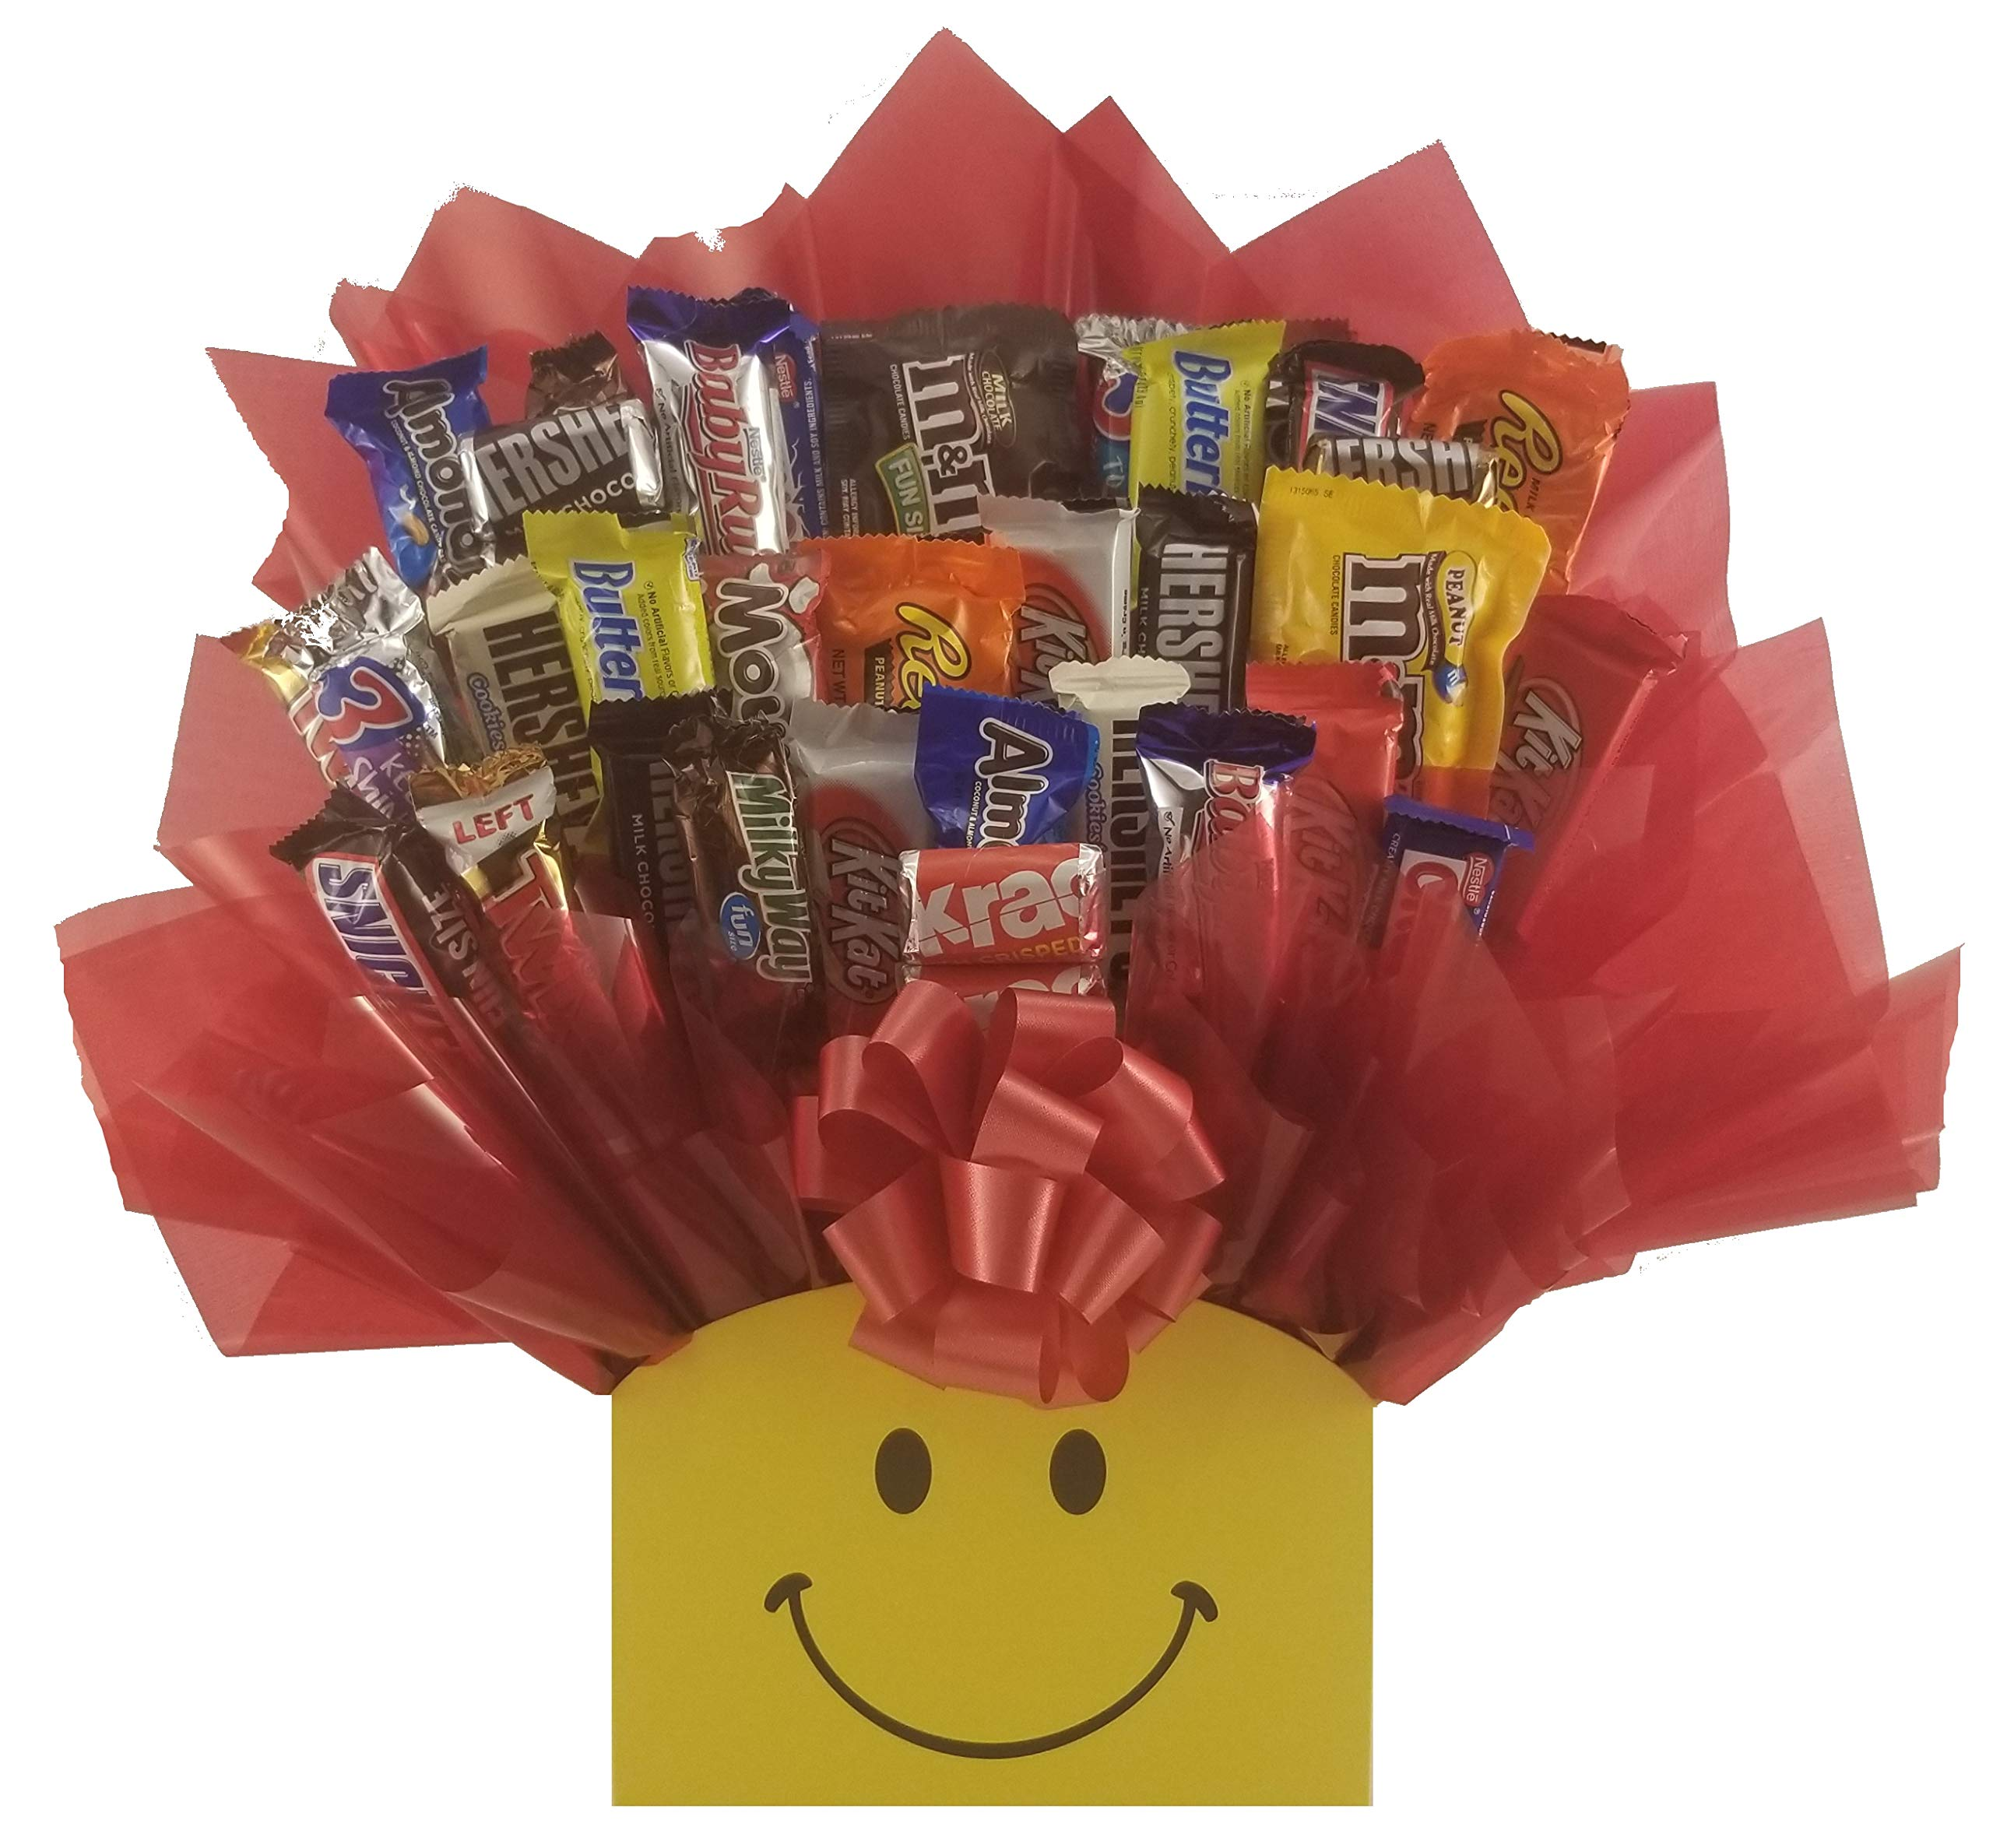 Smiley Face Chocolate Candy Bouquet gift basket box - Great gift for Birthday, Get Well, Thank You, Congratulations, Christmas or for any occasion for family, friends or business client customer. by So Sweet of You